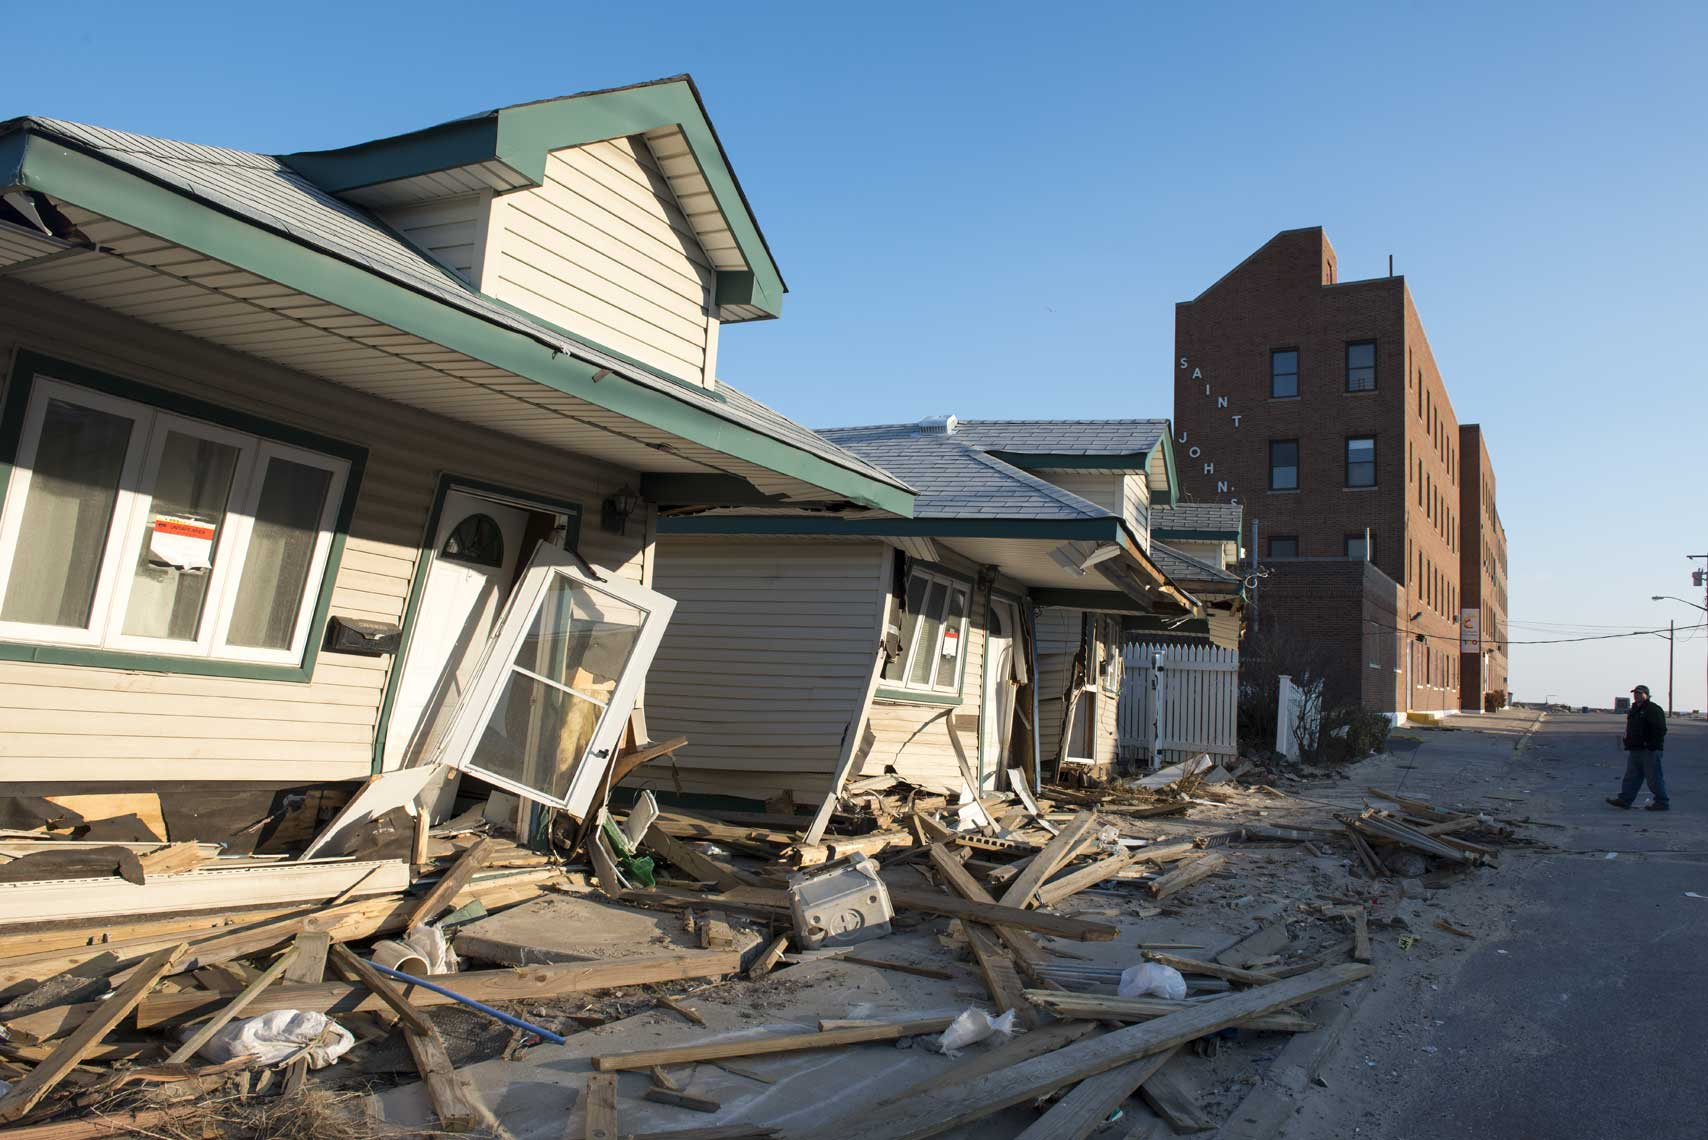 demolished-residential-street-on-the-Rockaways-following-Superstorm-Sandy